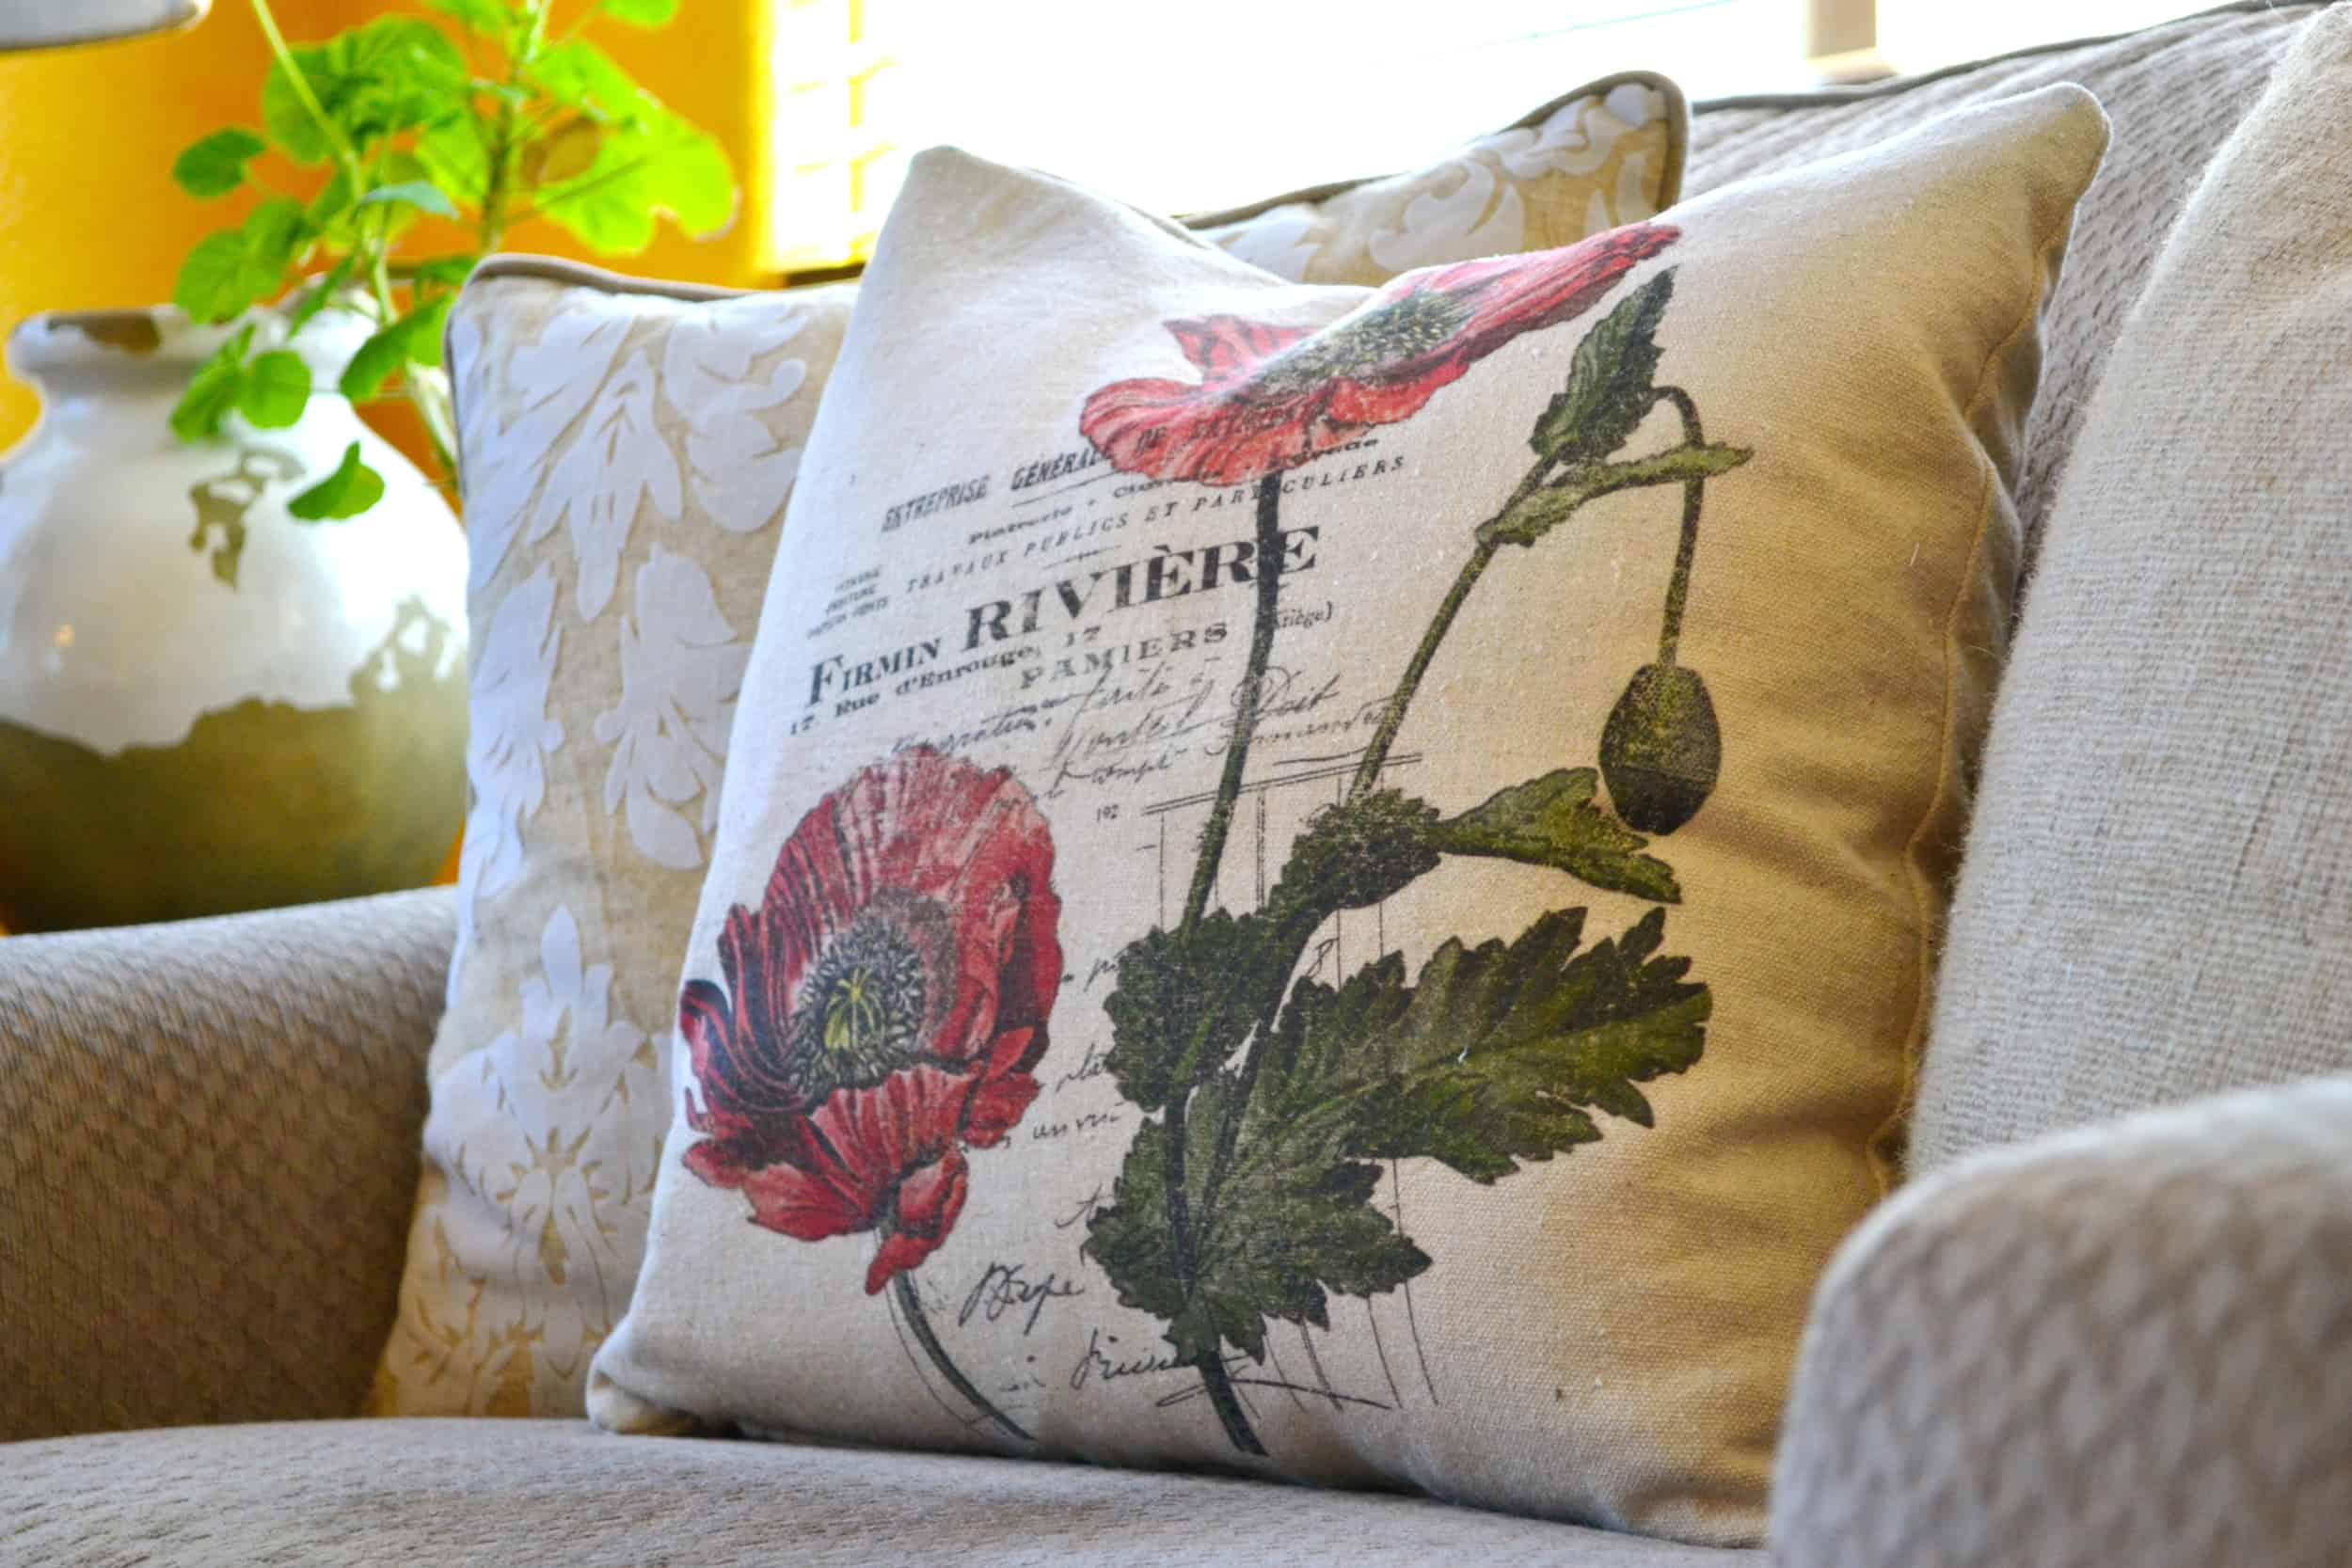 One of my pillows - oh, how styles have changed!